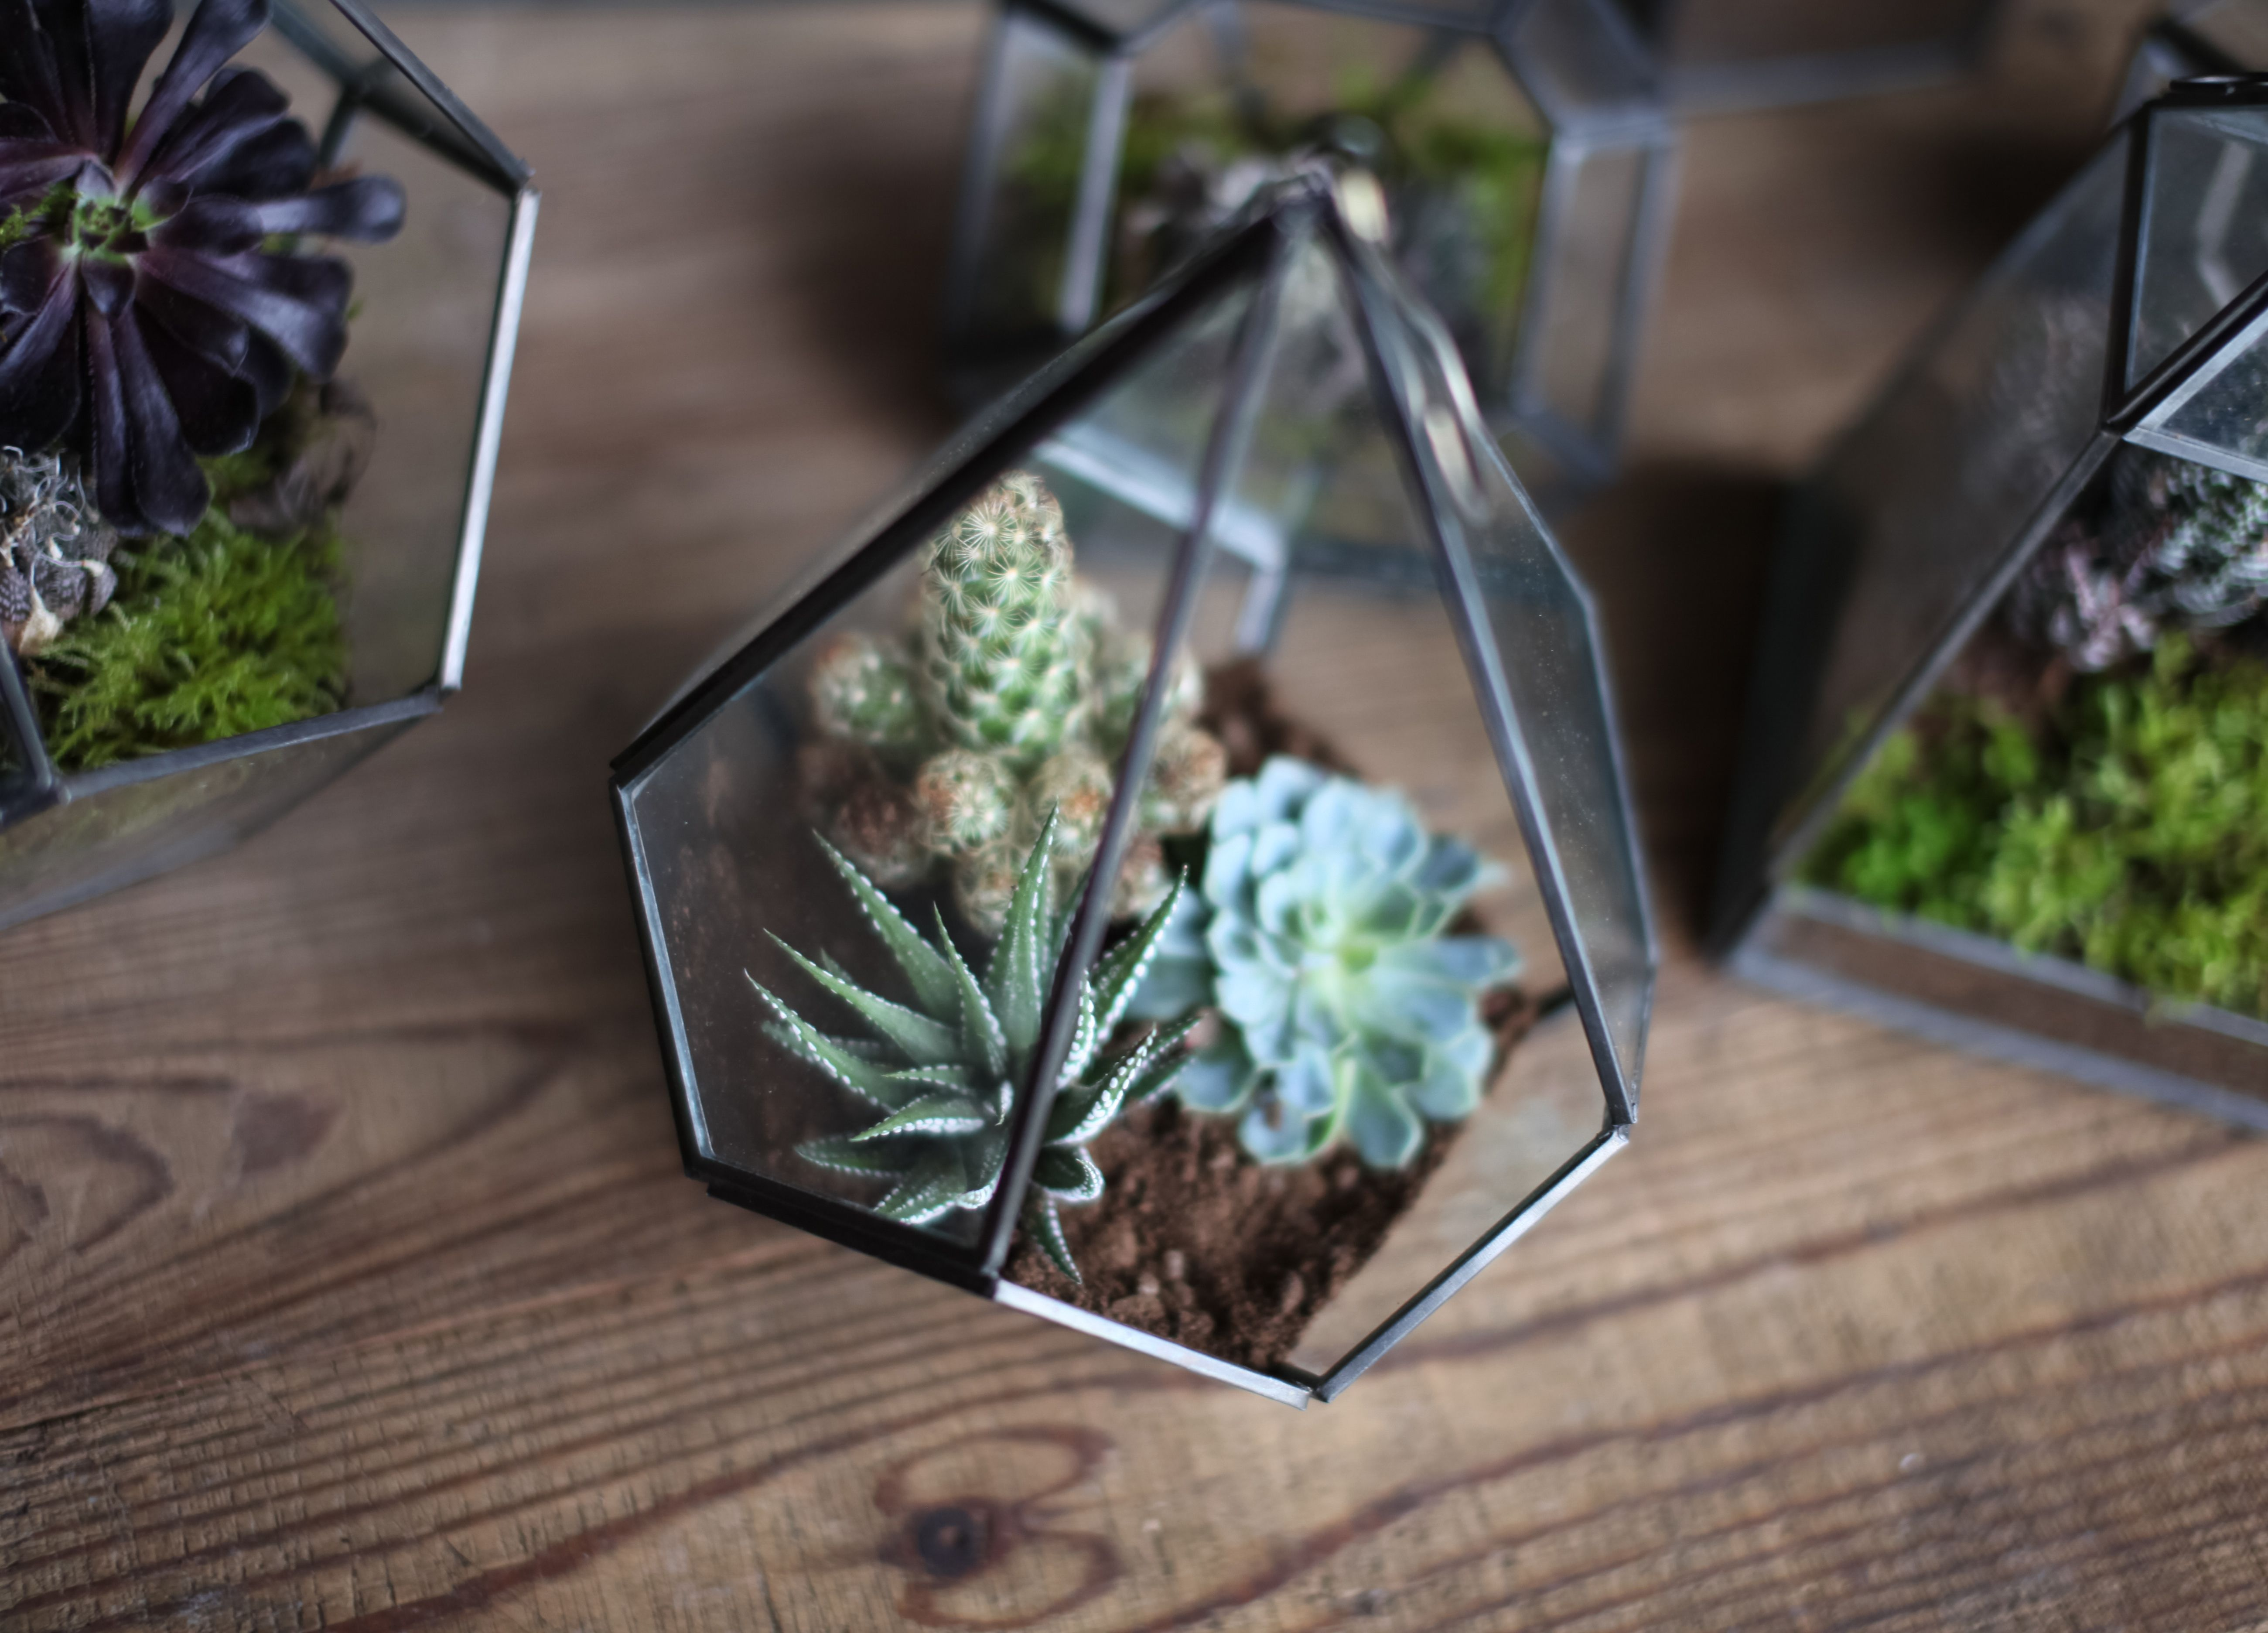 Manduri Hanging Planter | Our Manduri hanging planters are the perfect way to bring nature indoors. Their simple but elegant design provides a stylish backdrop for succulents and other indoor plants. They make a beautiful lantern or terrarium.